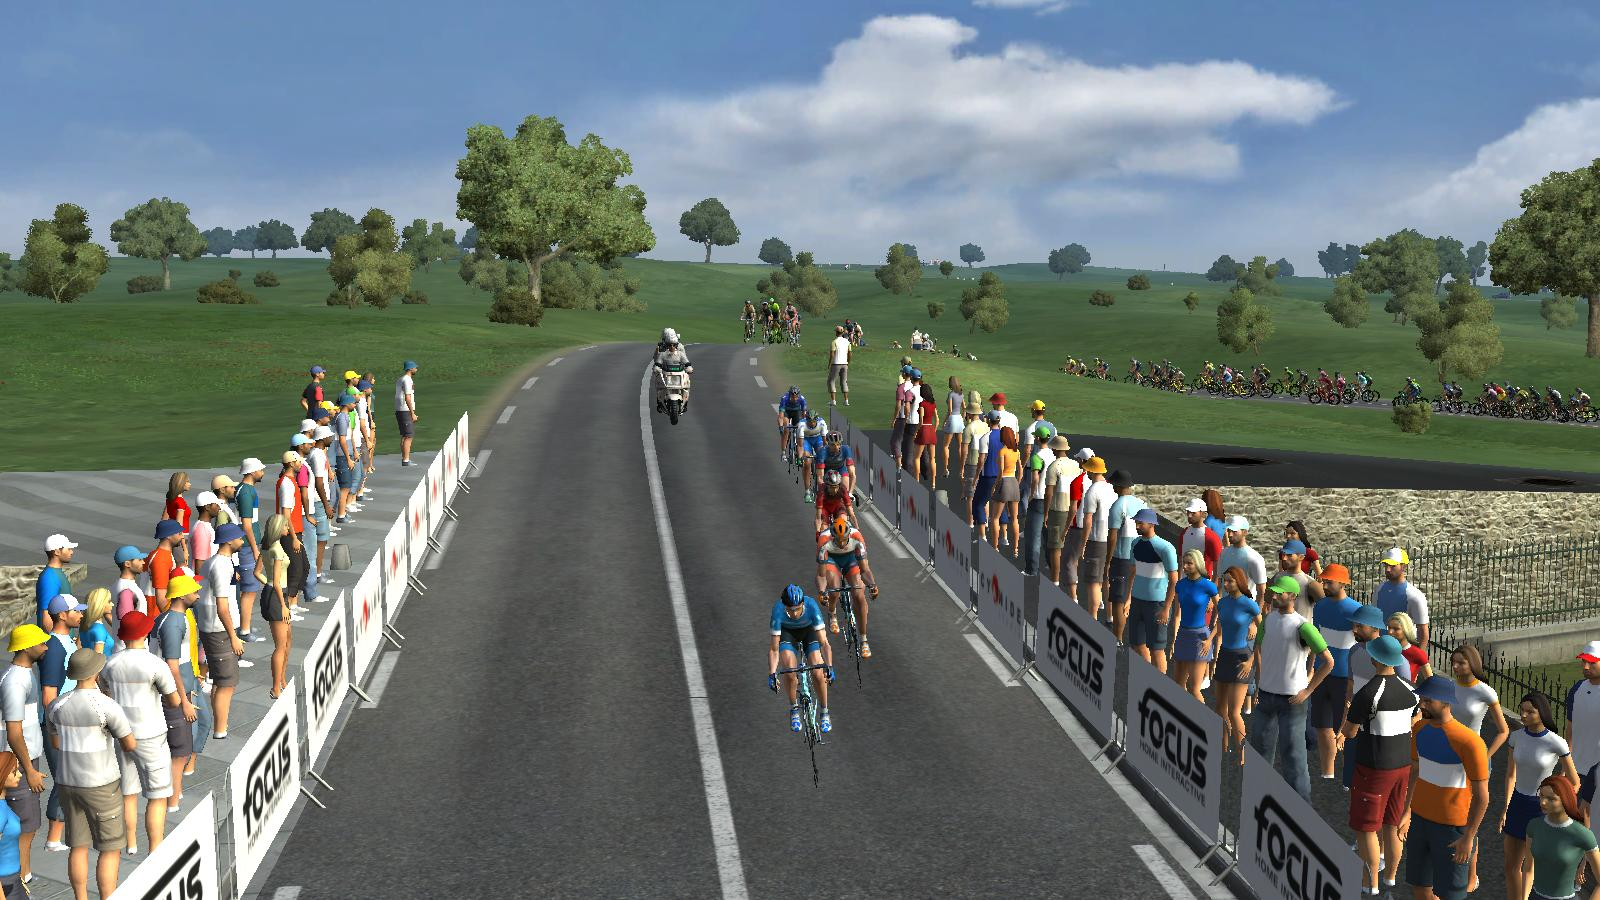 pcmdaily.com/images/mg/2019/Races/PTHC/Rheden/3.jpg